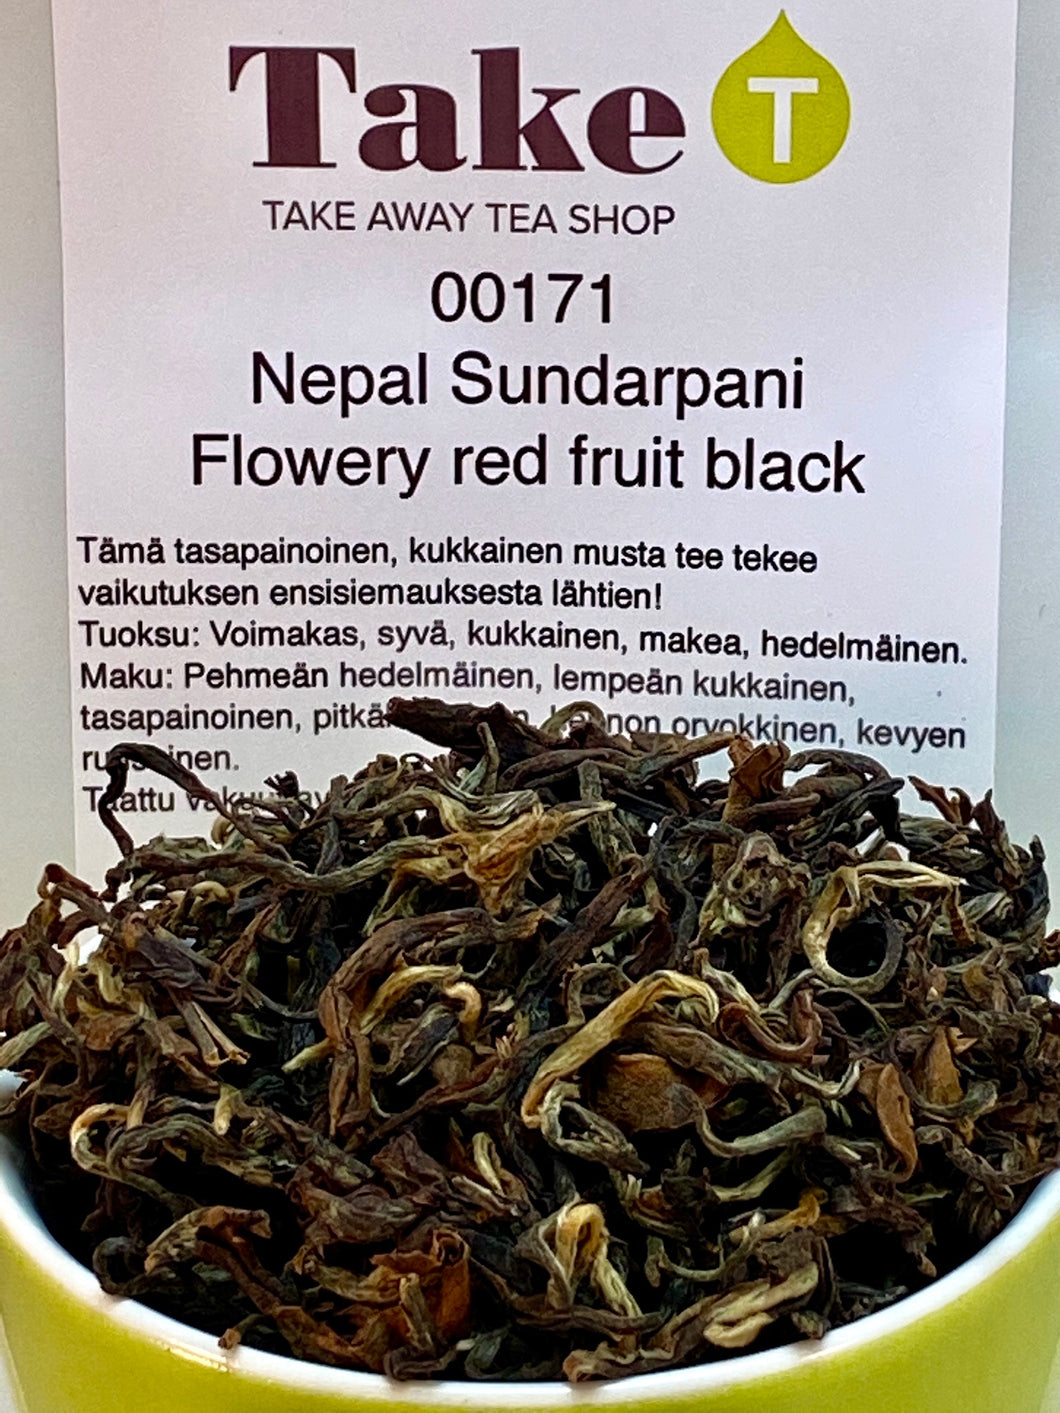 Nepal Sundarpani Flowery Red Fruit Black Tea